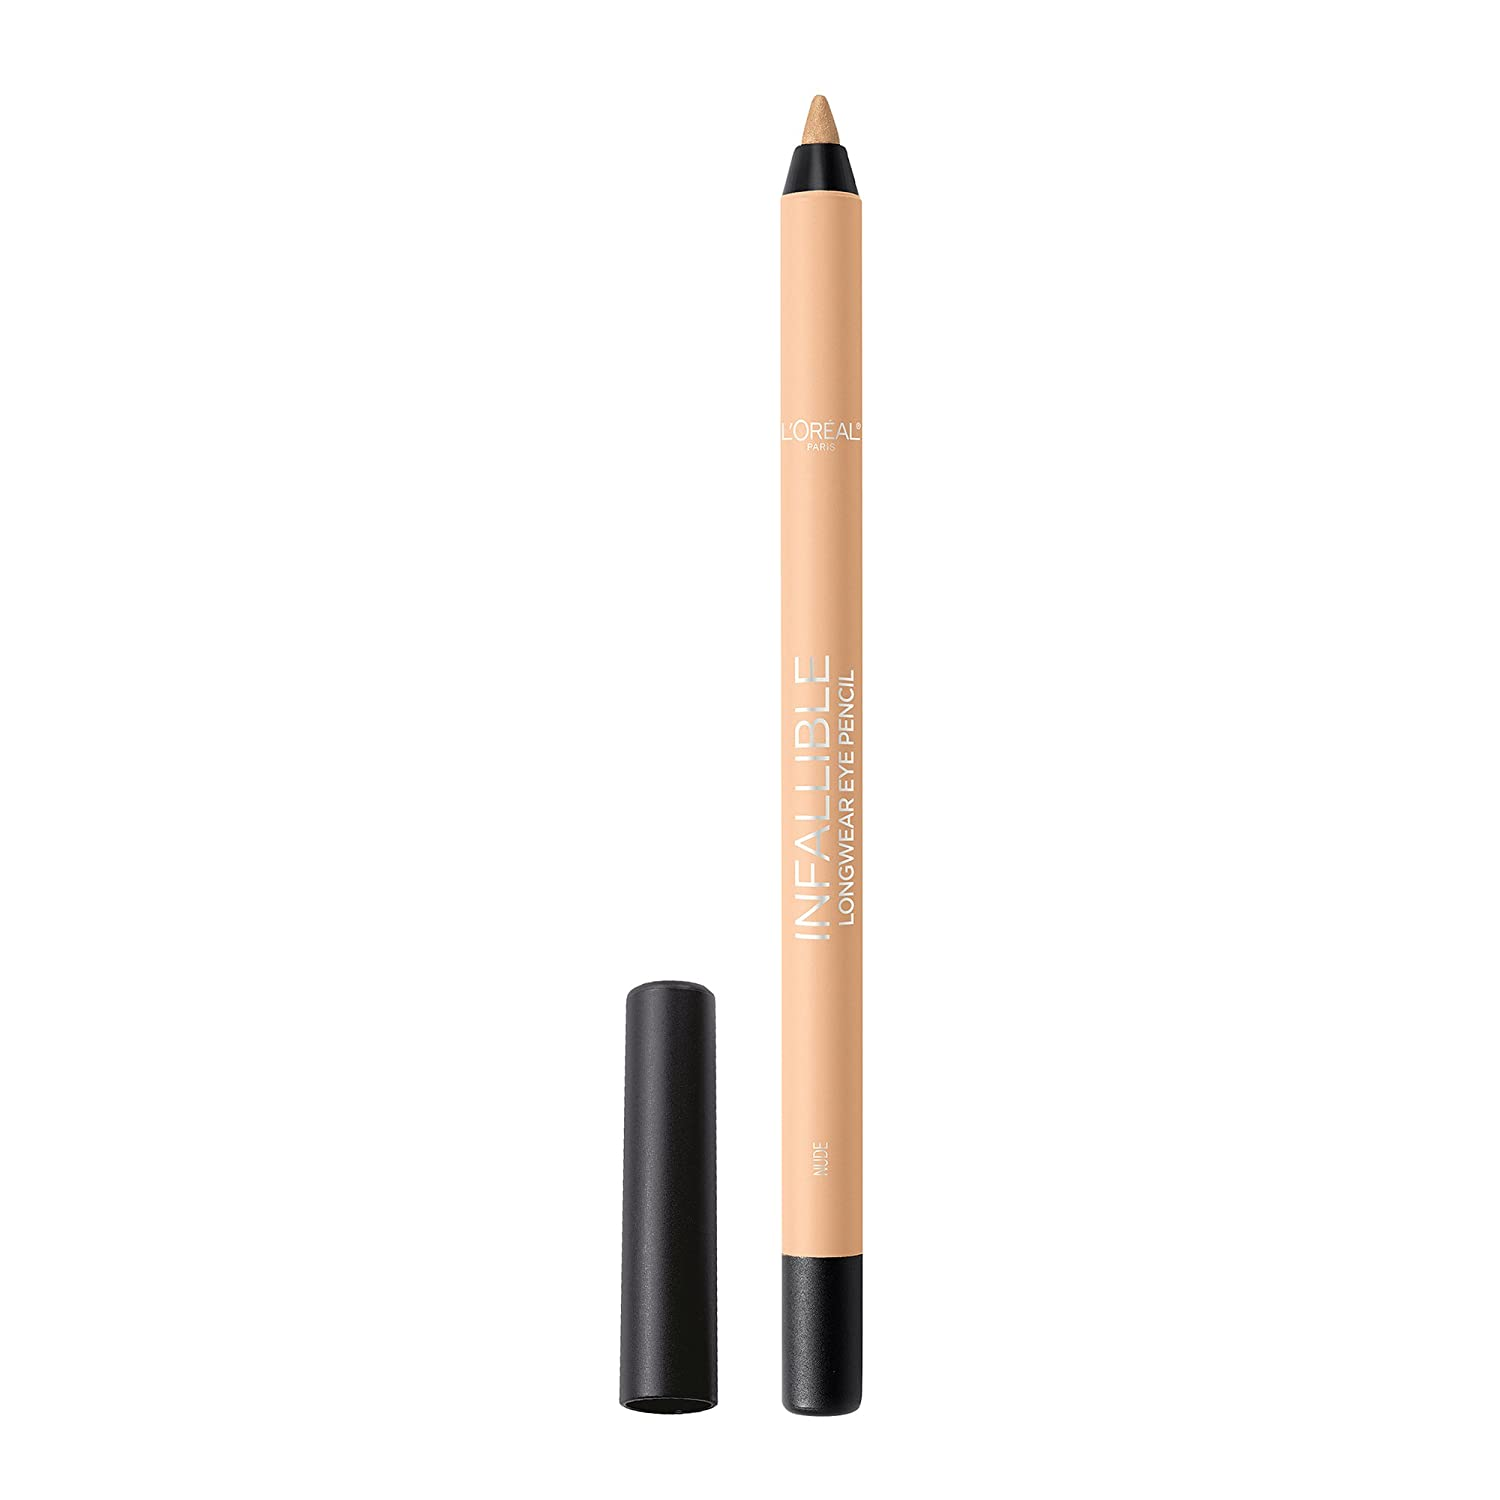 L'Oreal Paris Infallible Pro-last Pencil Eyeliner Waterproof, Nude 980, 1.2g L' Oreal Paris